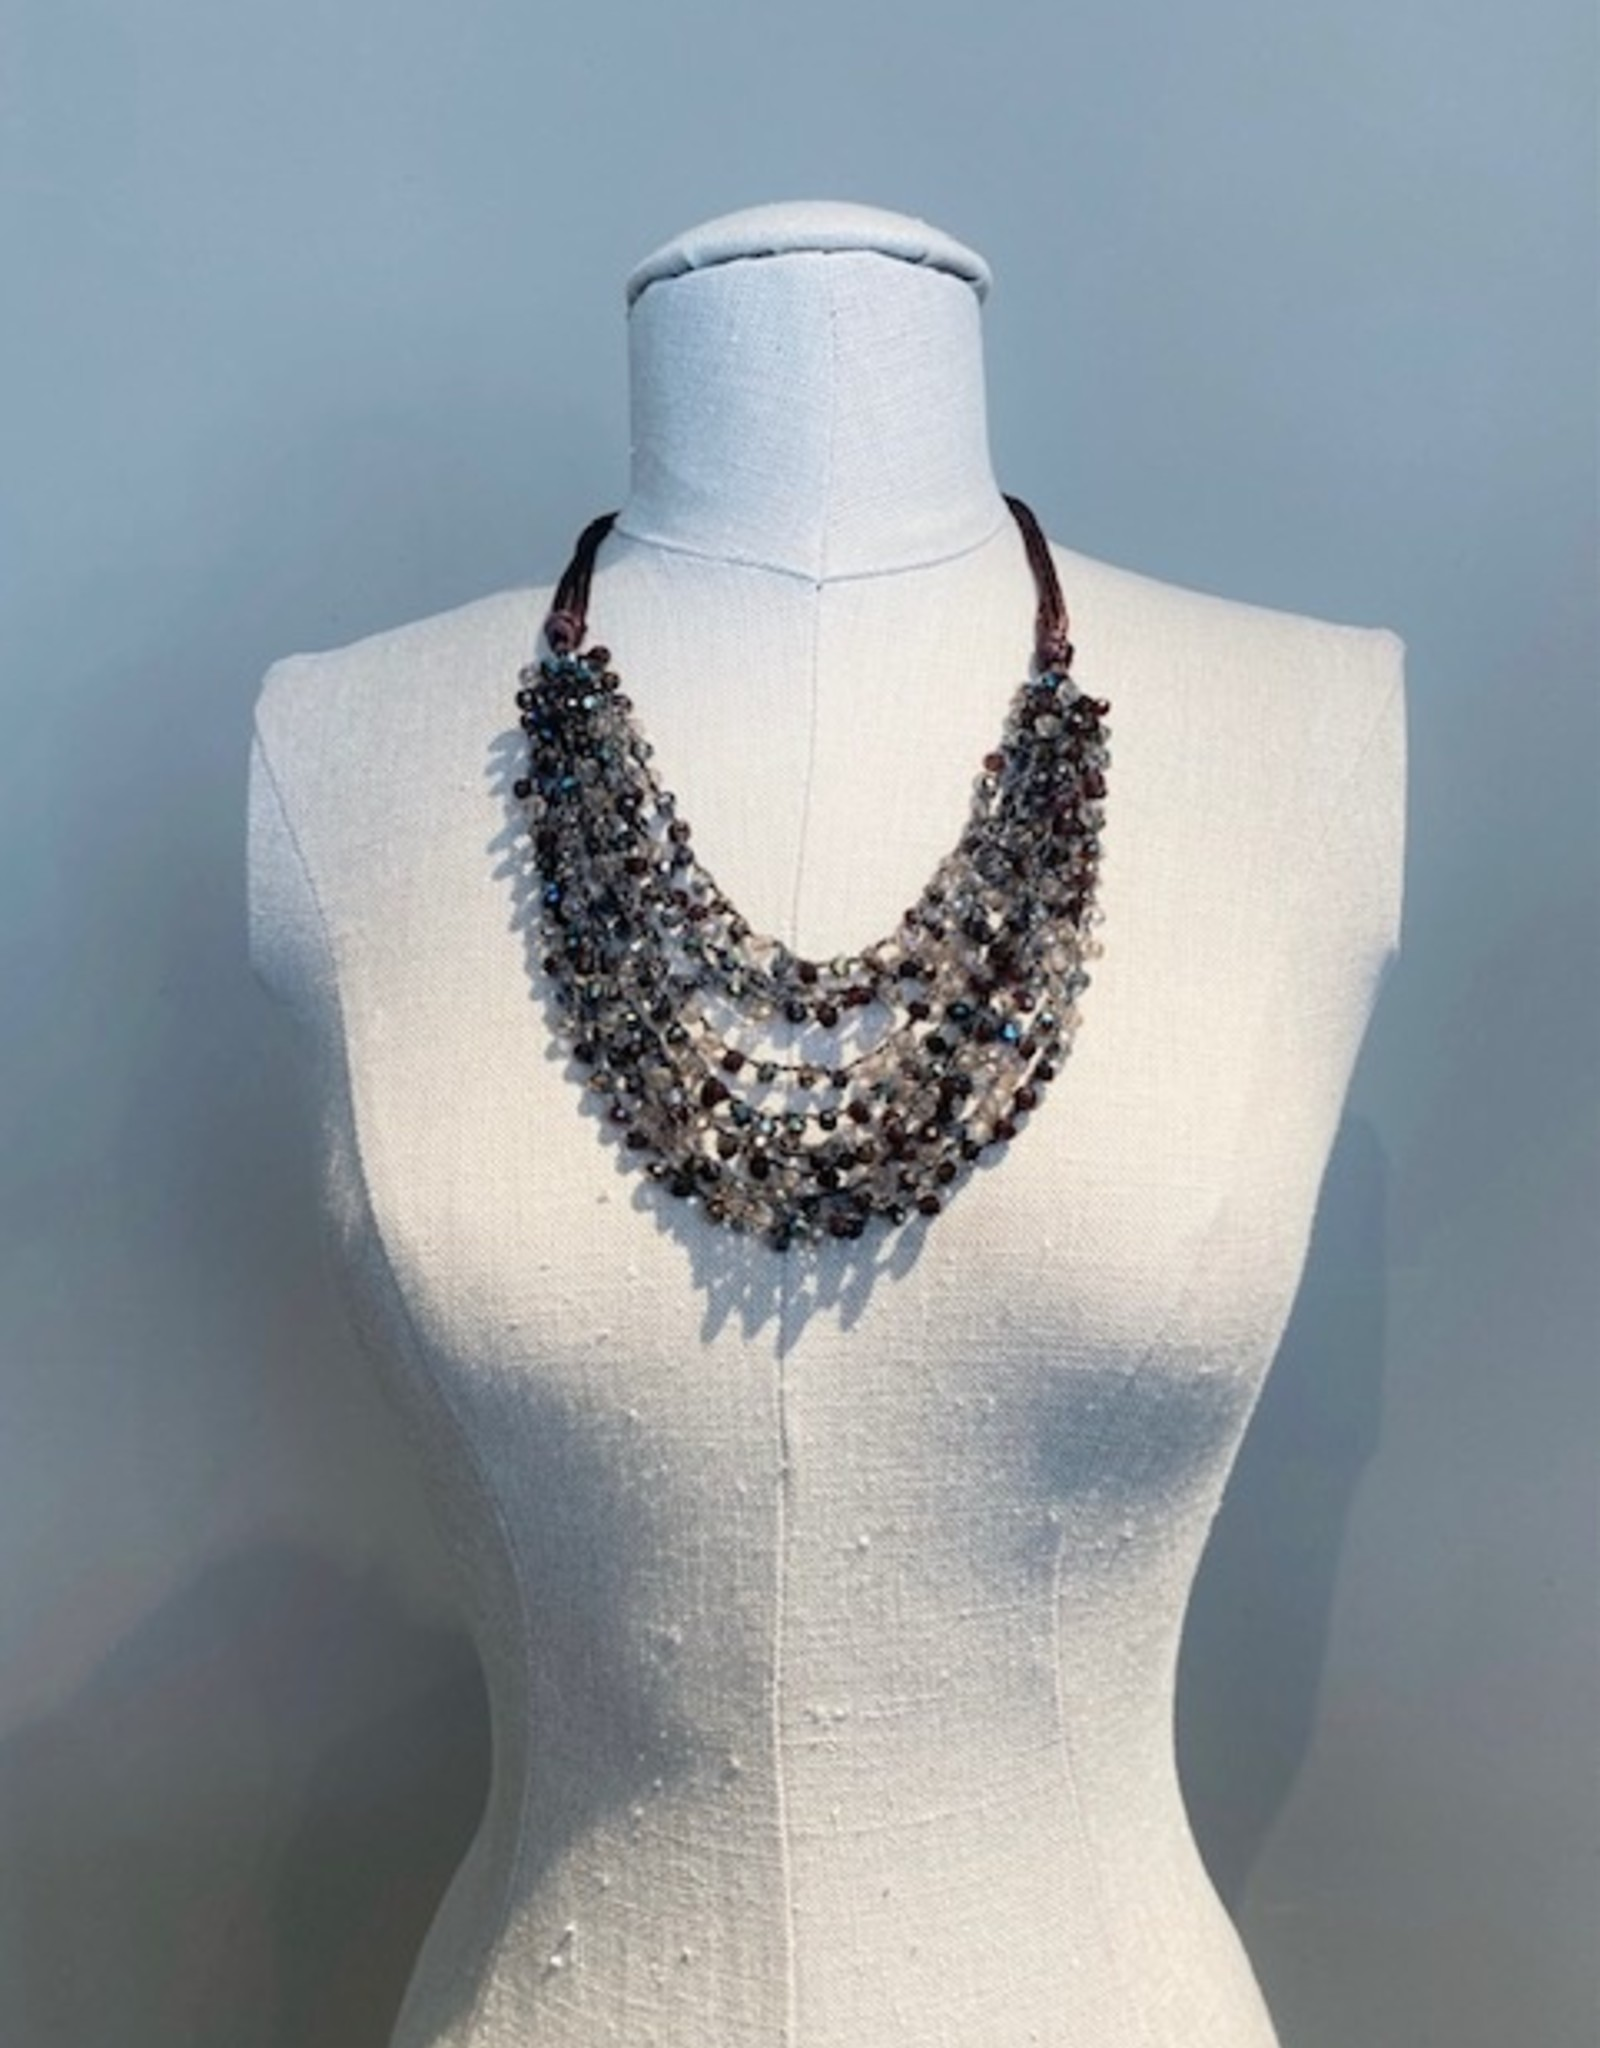 Sacchi crystal beaded necklace